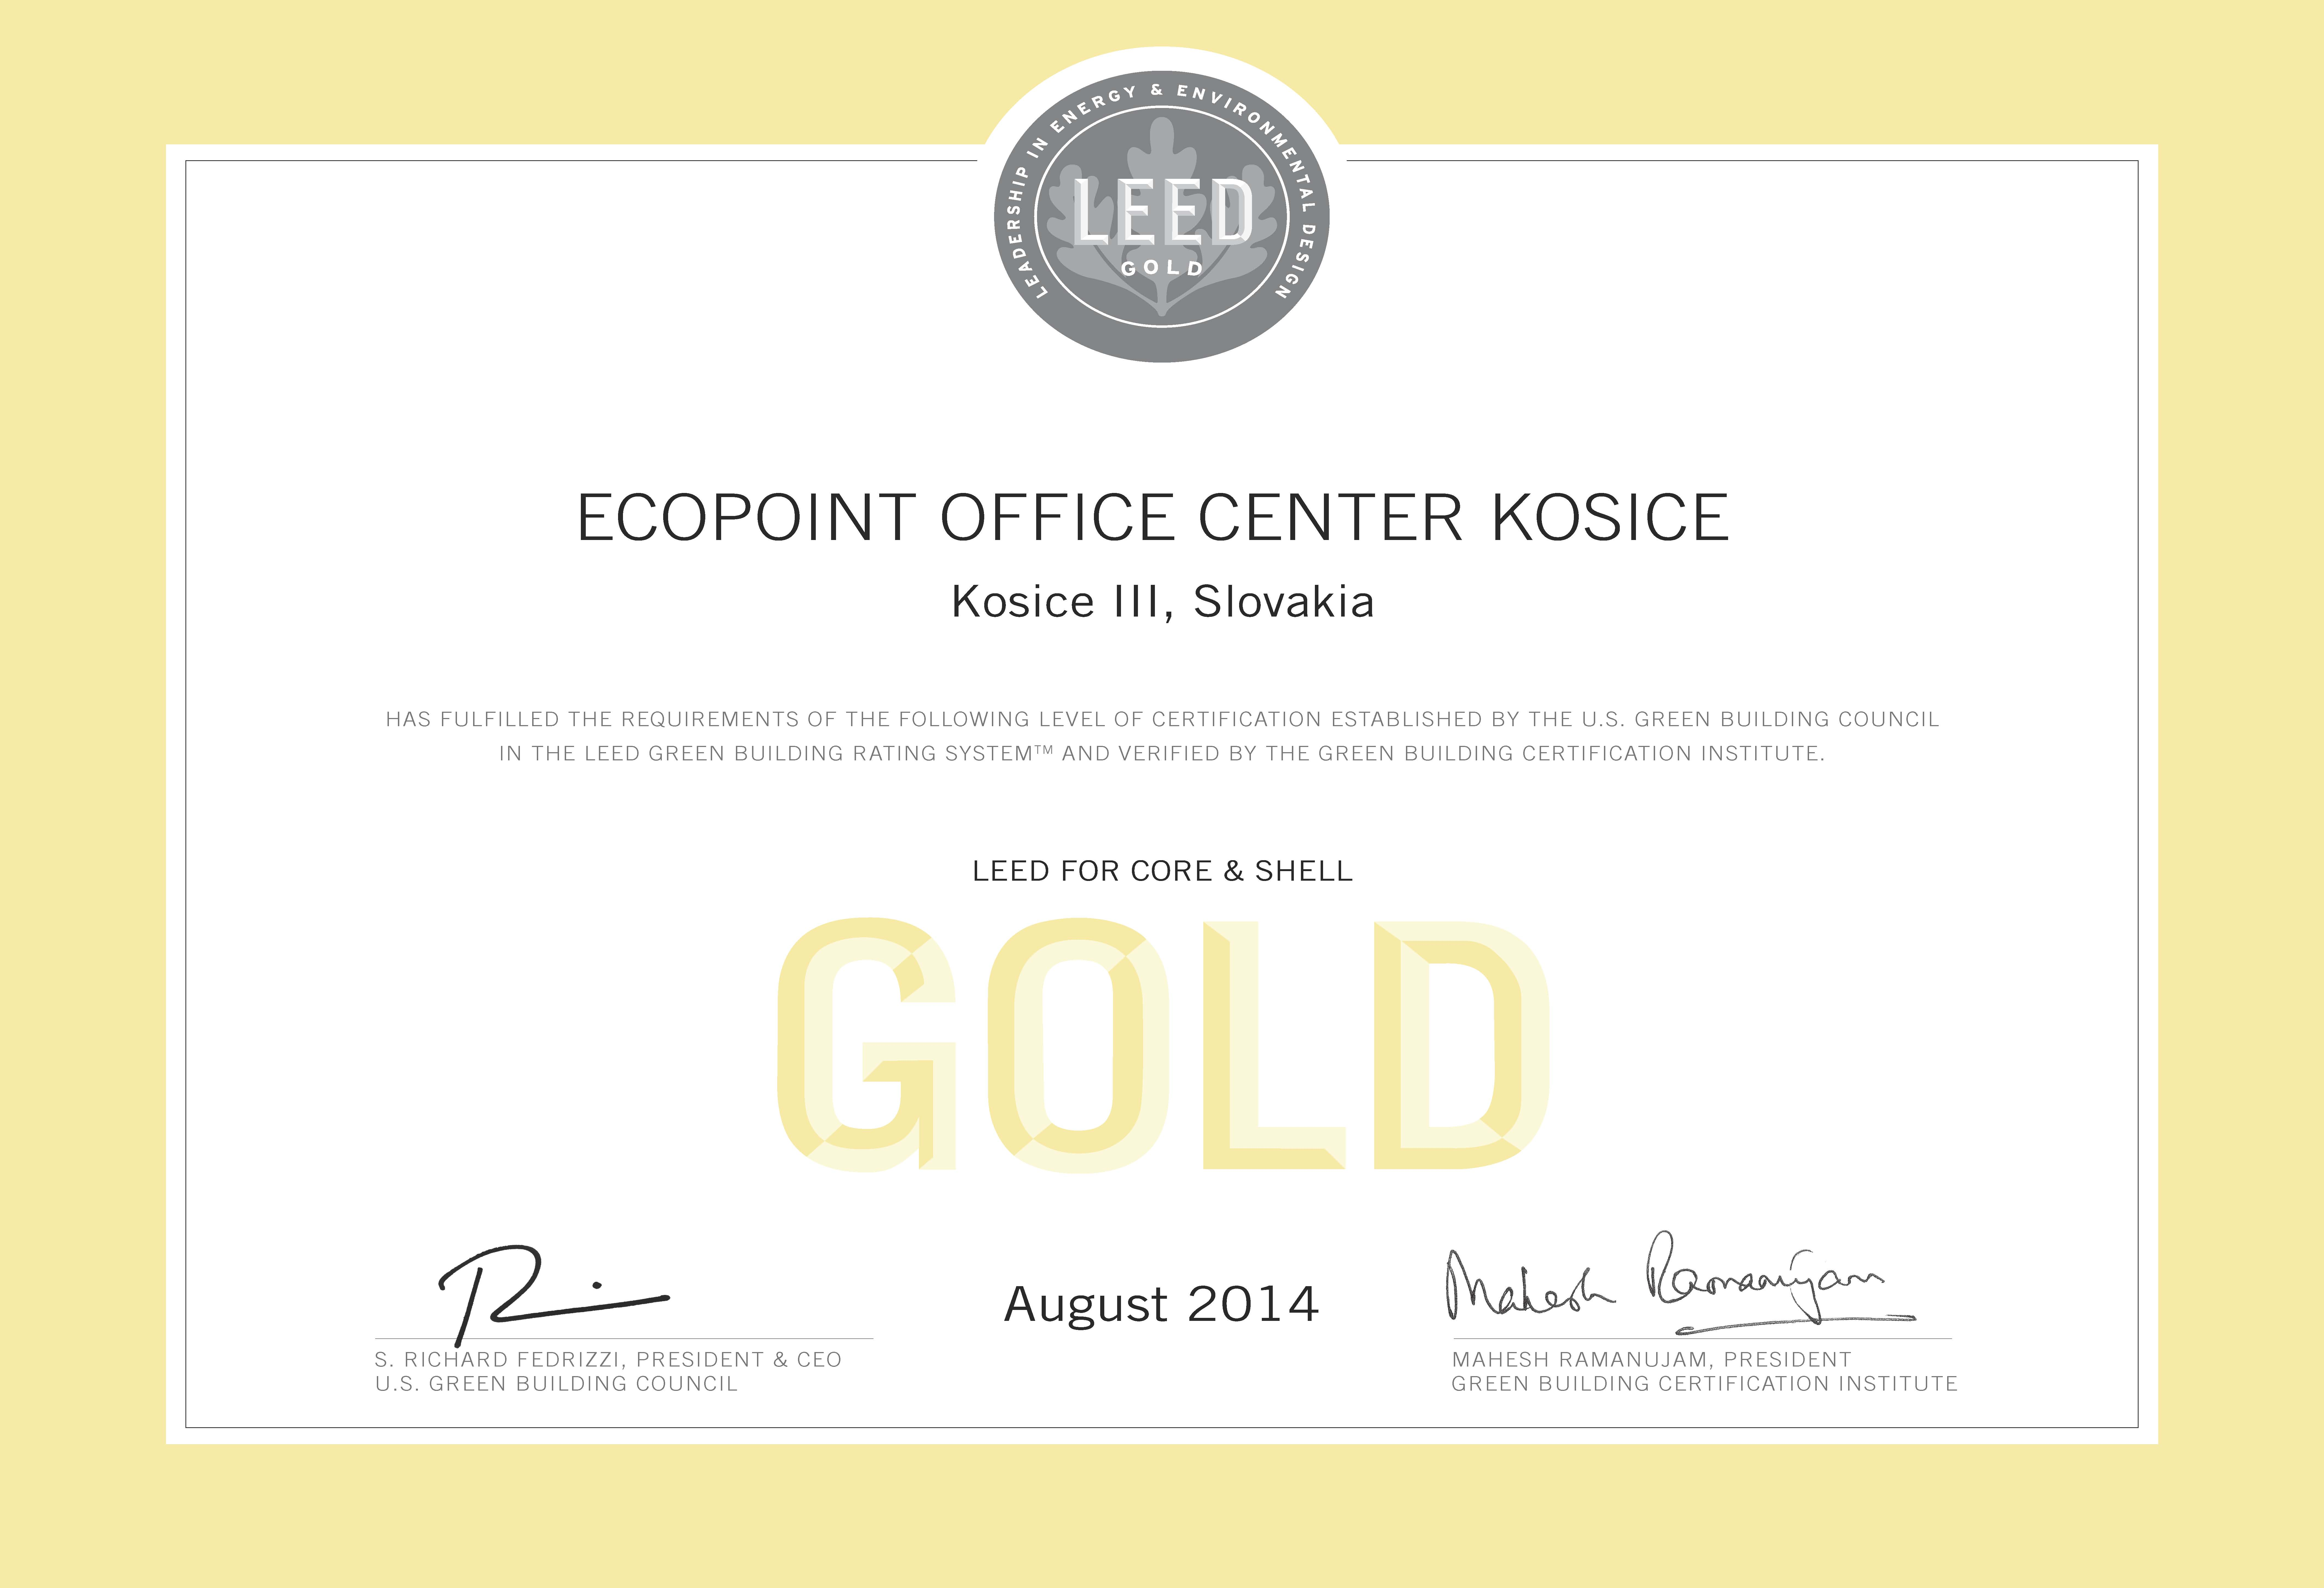 Certification Of Leed Gold Ecopoint